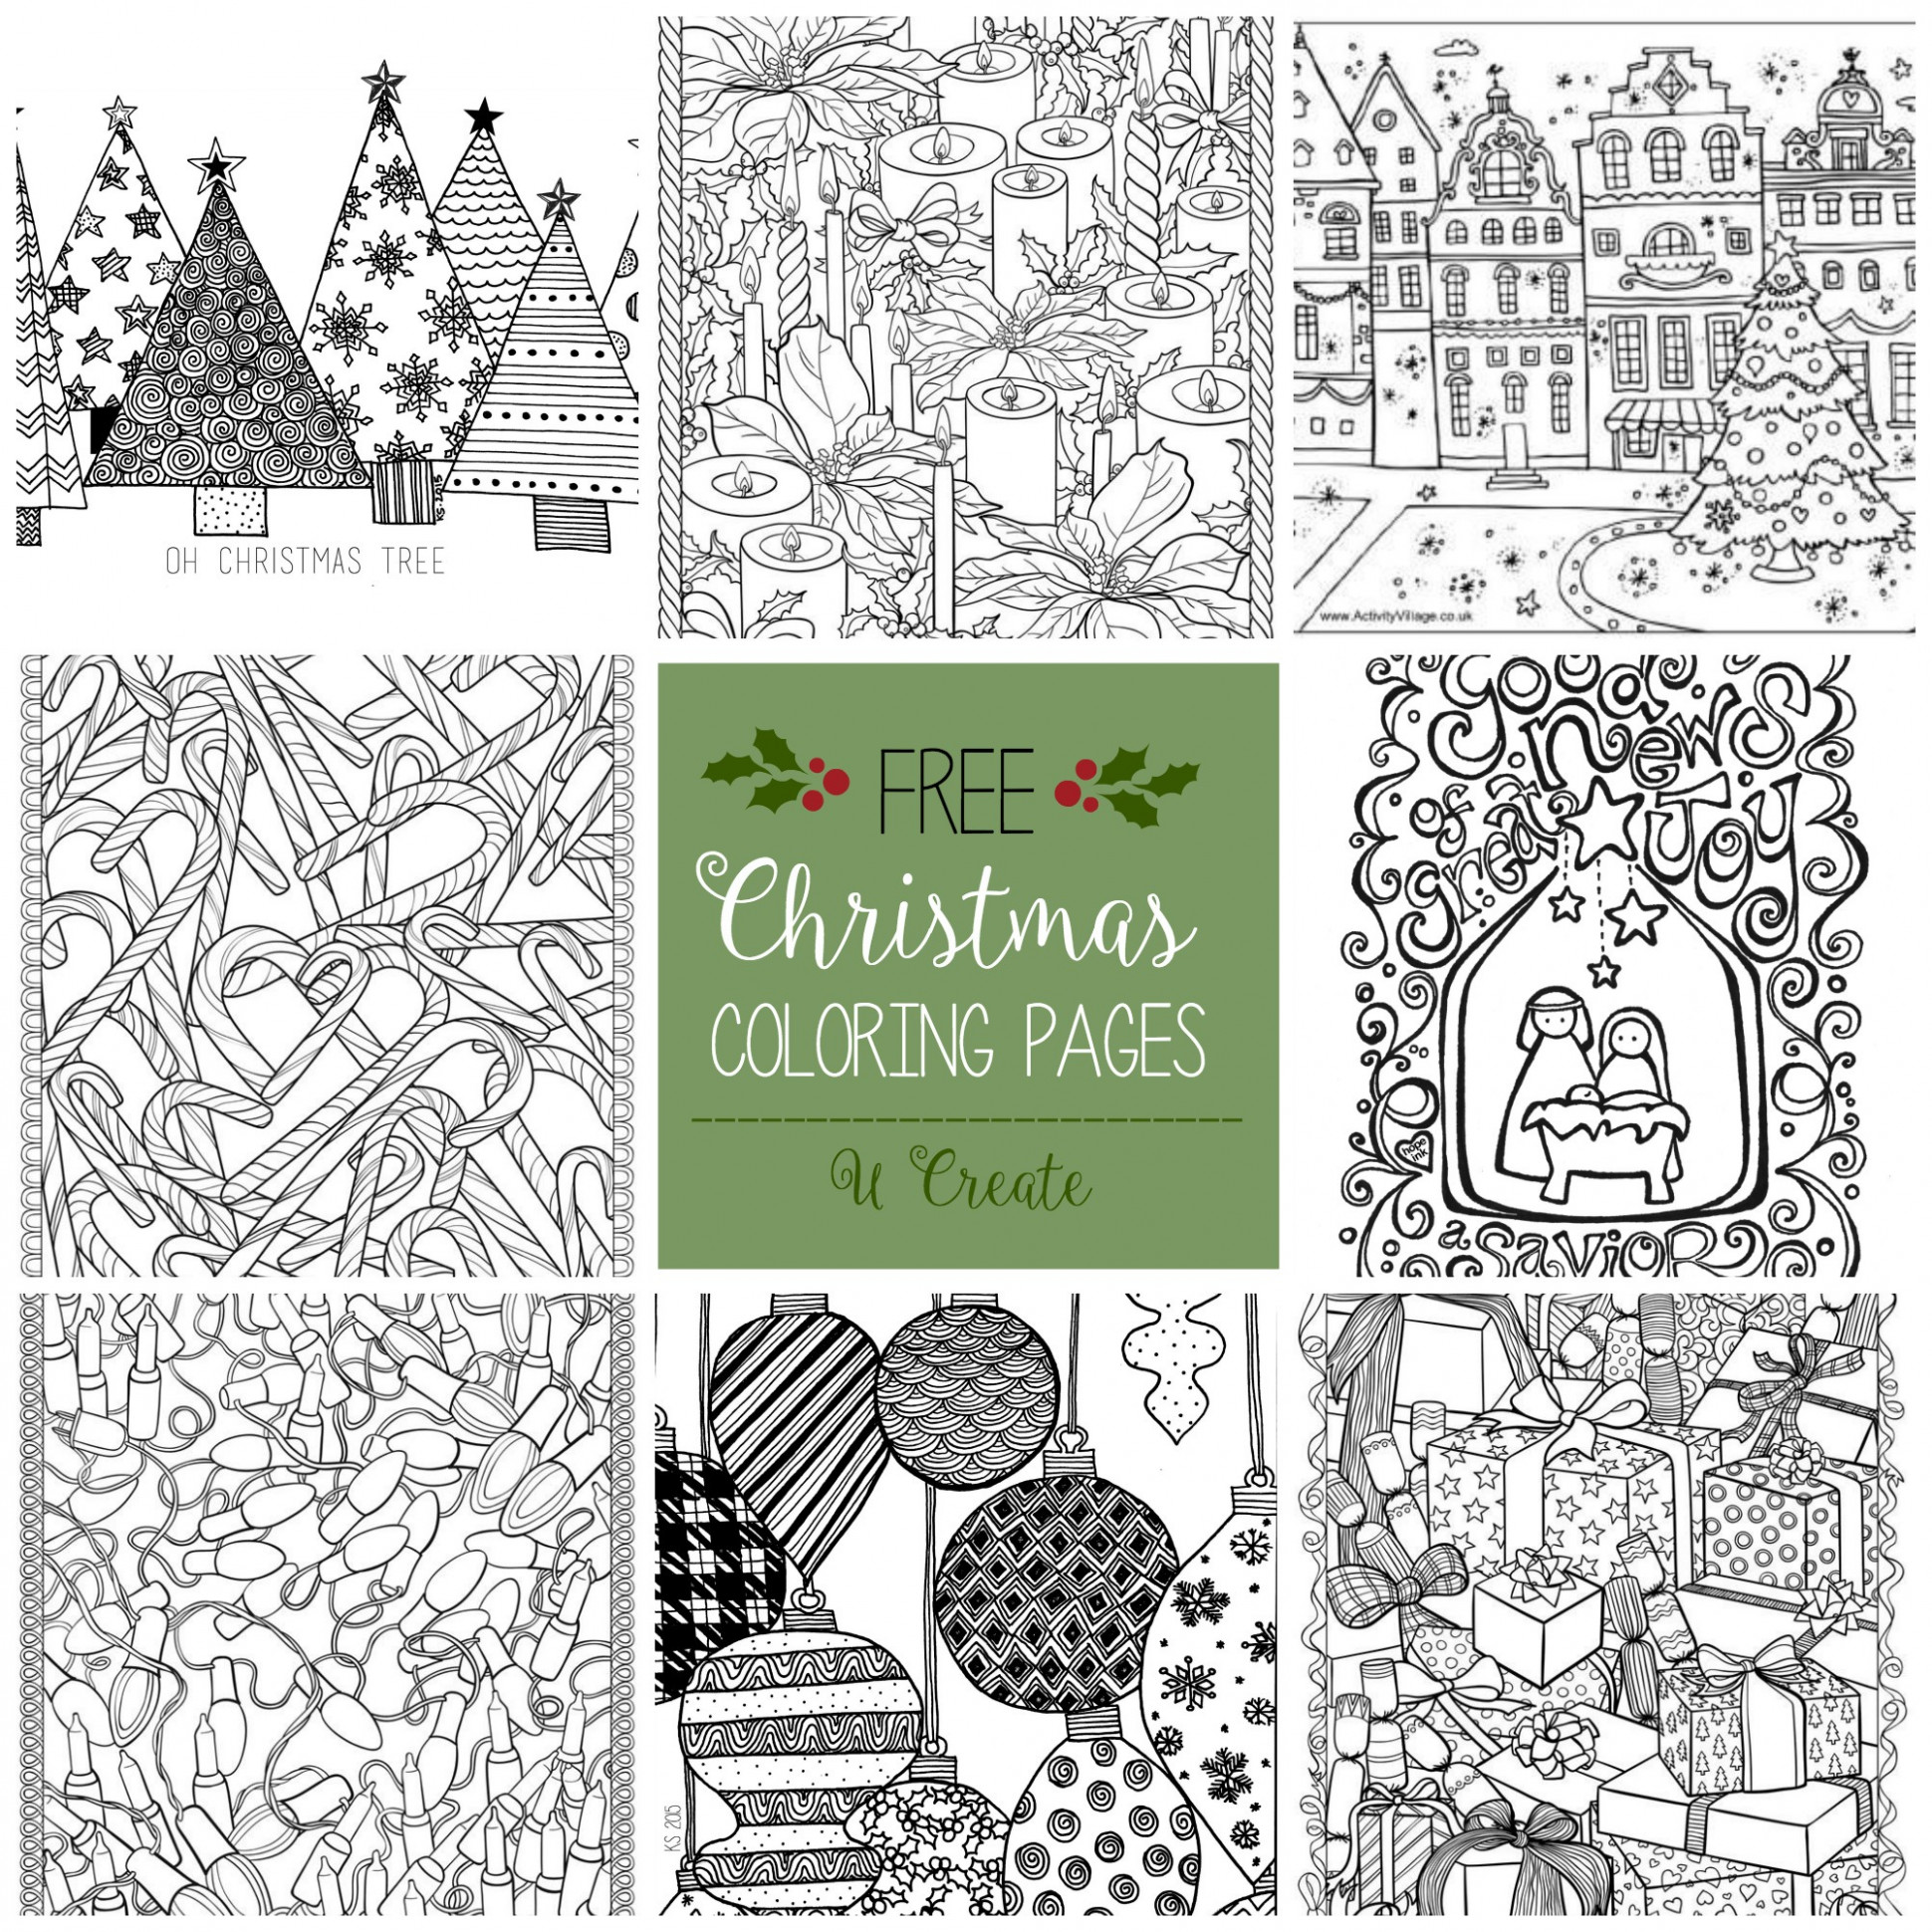 Free Christmas Adult Coloring Pages – U Create – Christmas Adults Coloring Pages